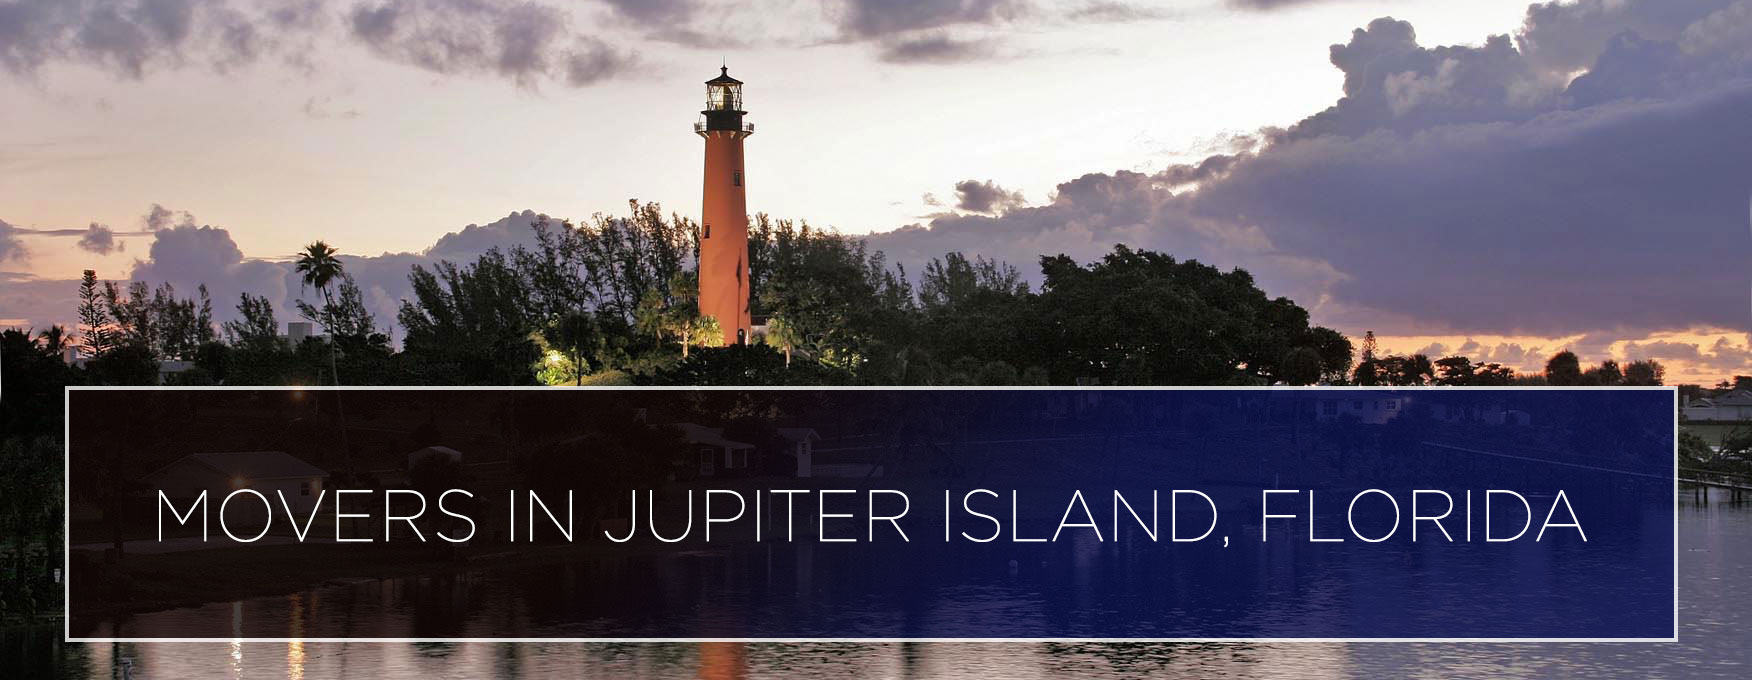 jupiter lighthouse with movers in jupiter island, florida caption